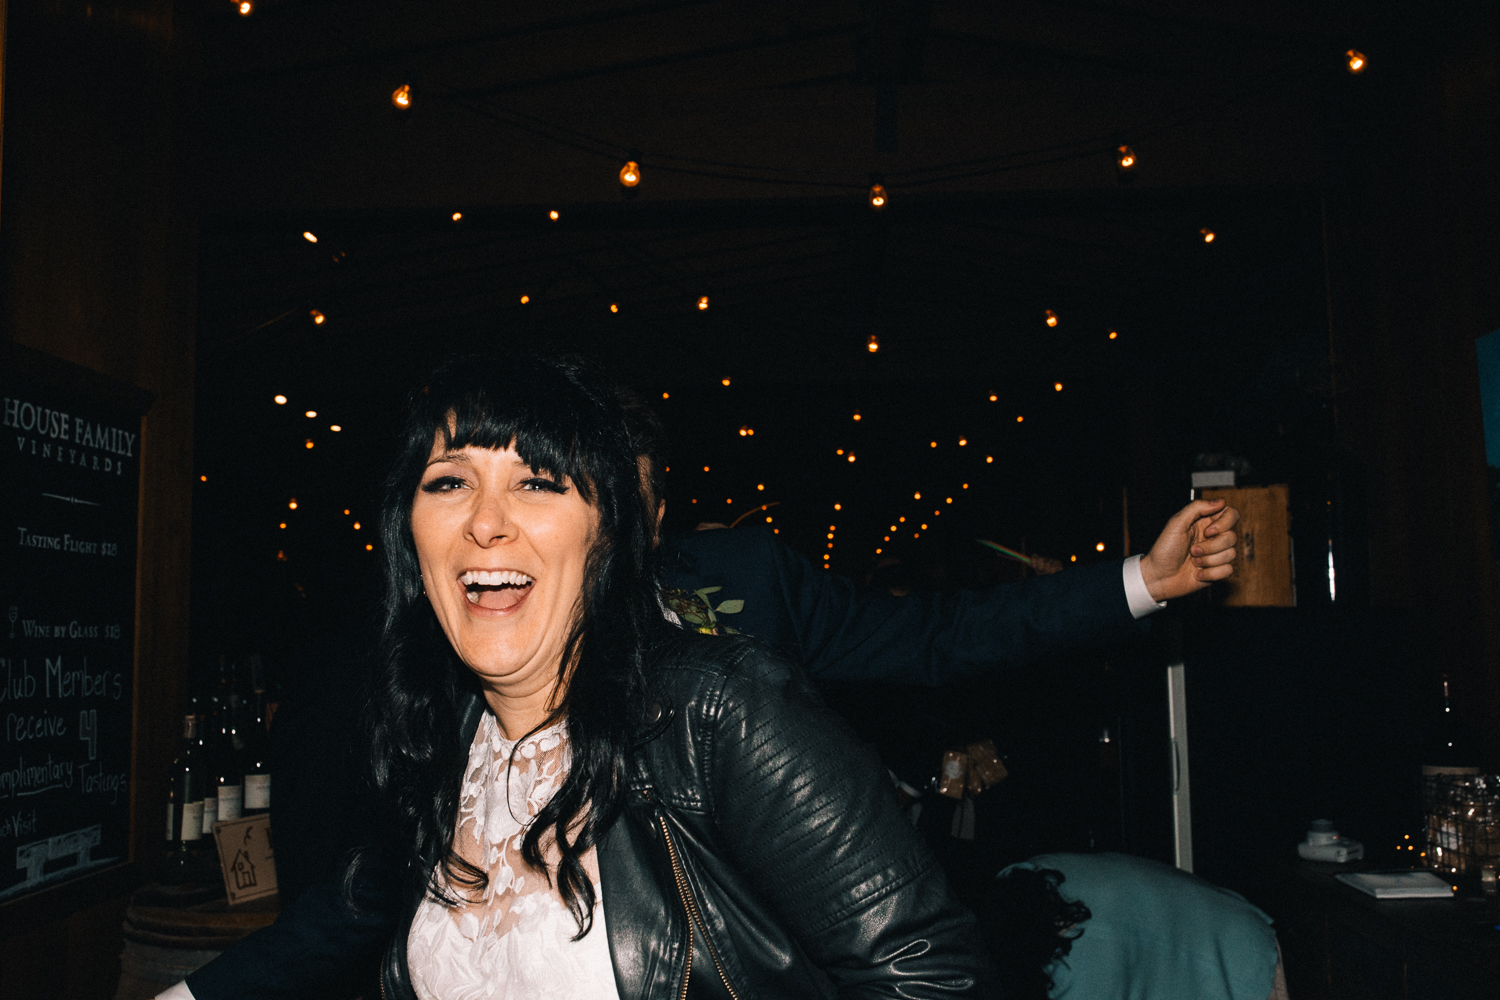 2019_05_ 182019.05.19 Lisa + Eddie South Bay Wedding Blog Photos Edited For Web 0161.jpg